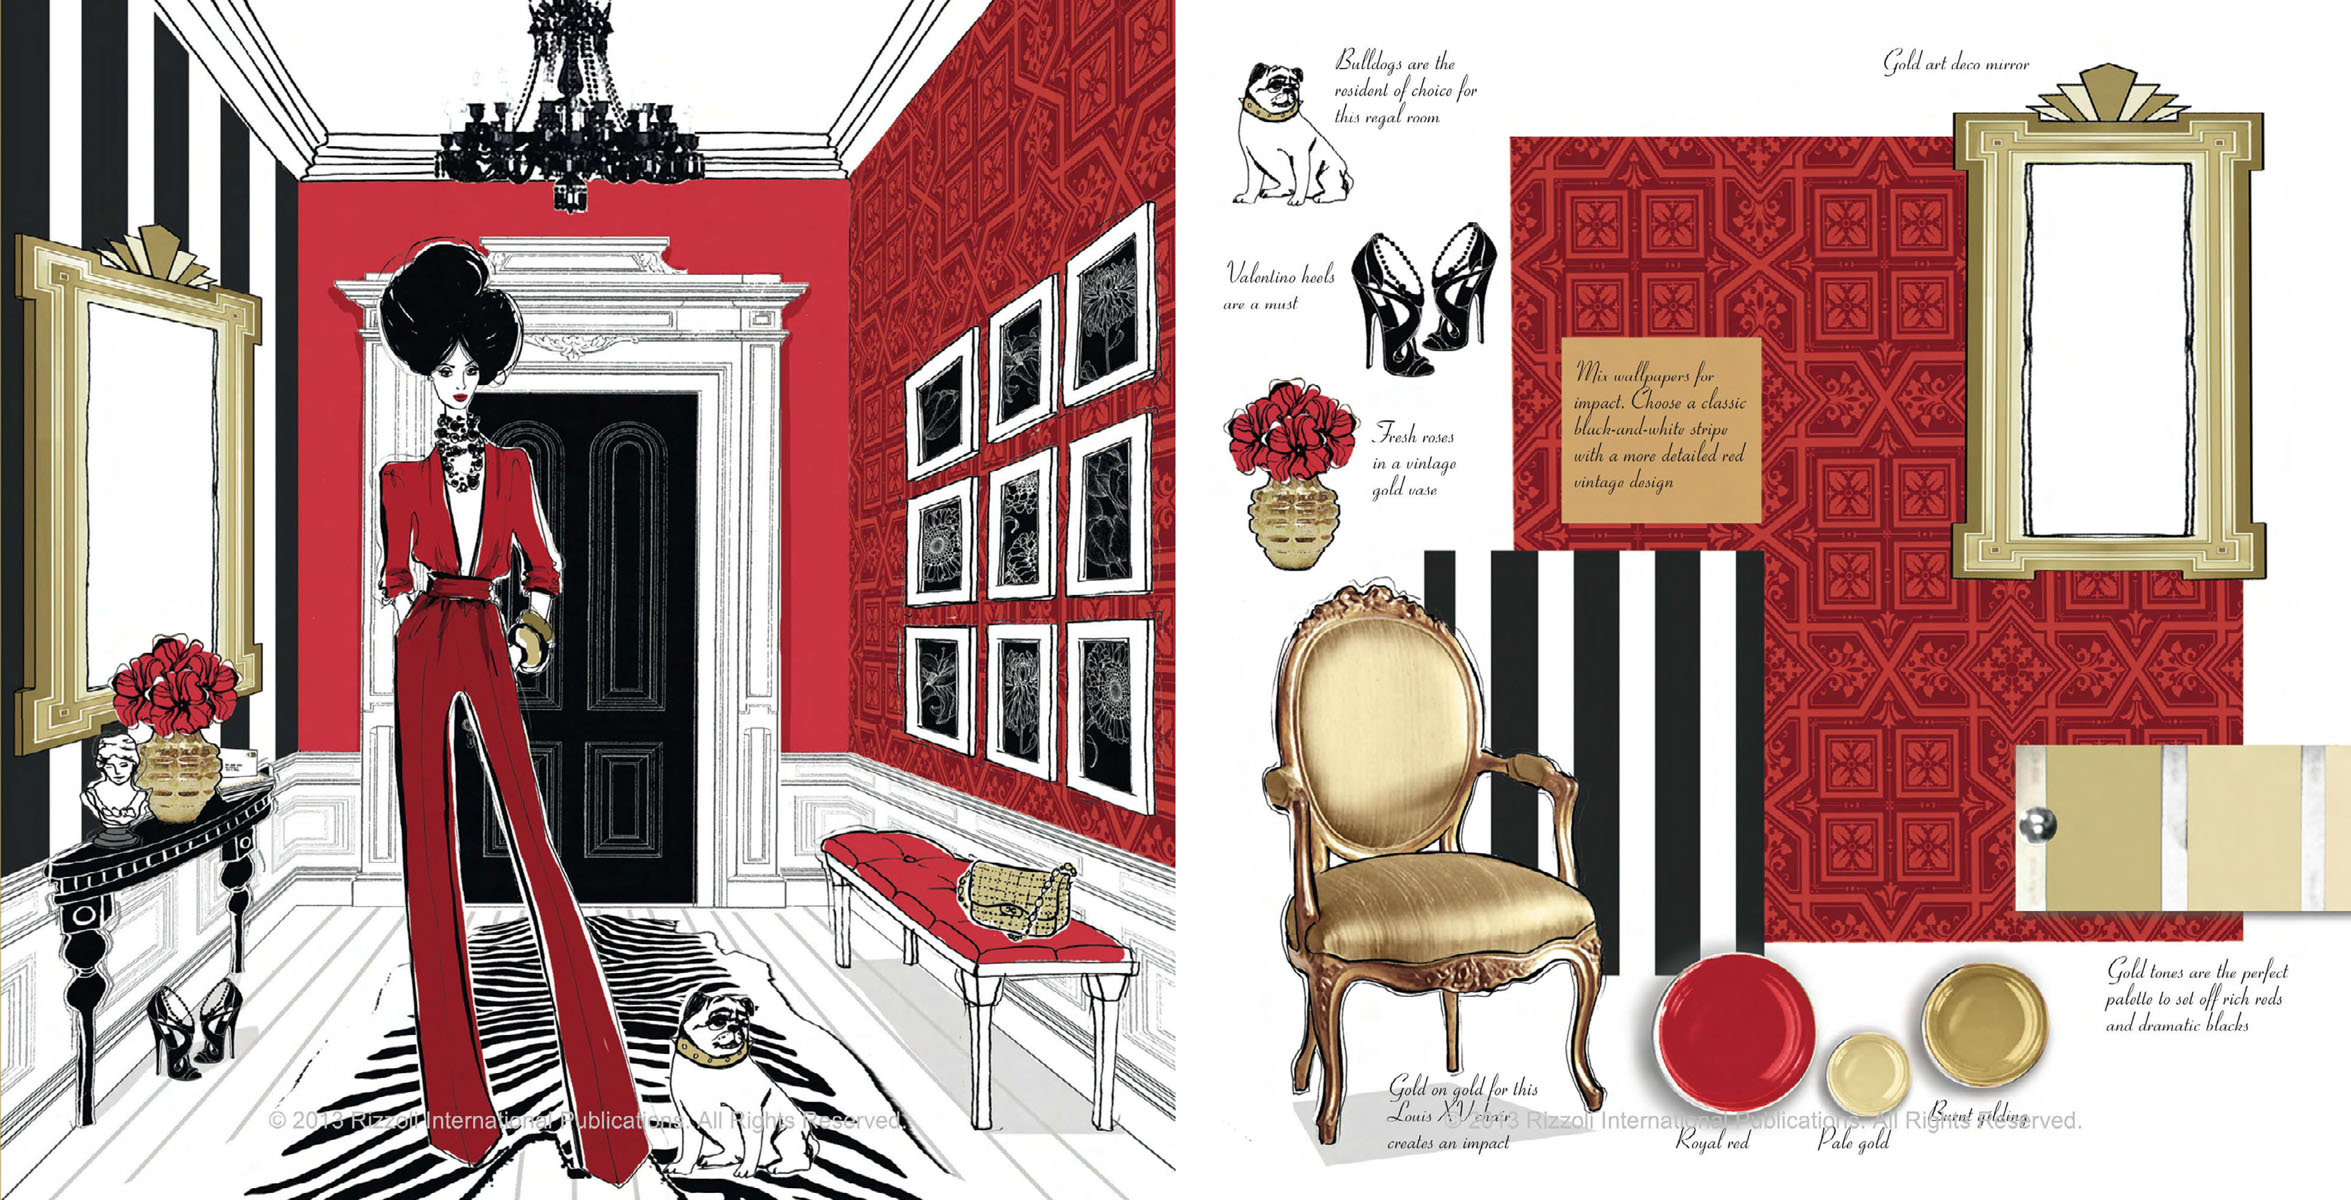 megan hess illustration stellar interior design. Black Bedroom Furniture Sets. Home Design Ideas